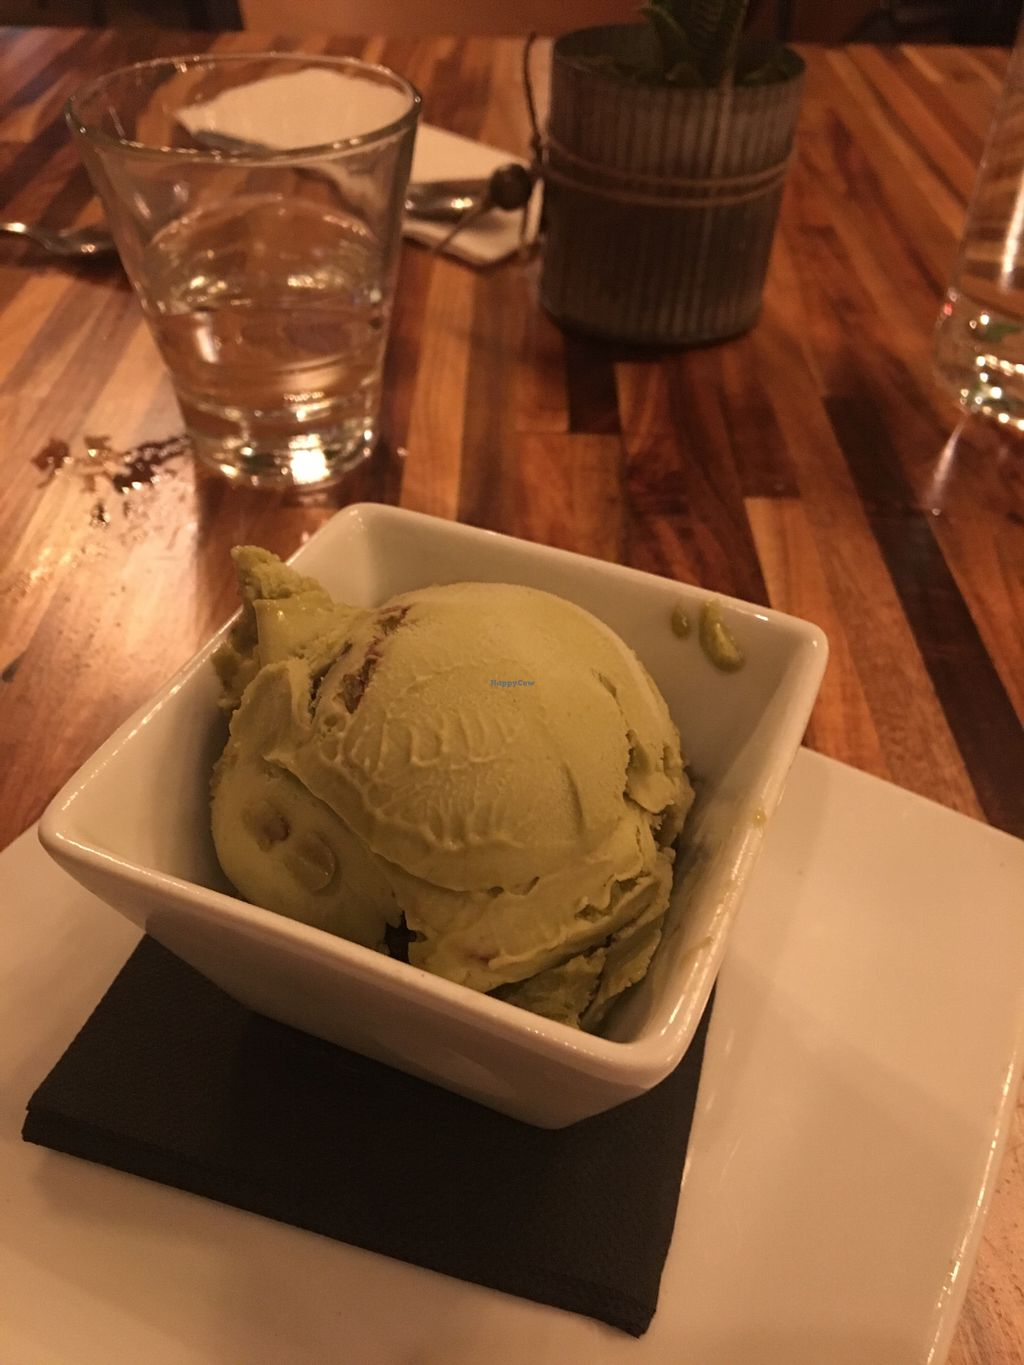 "Photo of GreenSpace Cafe  by <a href=""/members/profile/Michael%20Isavegan"">Michael Isavegan</a> <br/>Mint chip ice cream <br/> October 27, 2017  - <a href='/contact/abuse/image/57951/319335'>Report</a>"